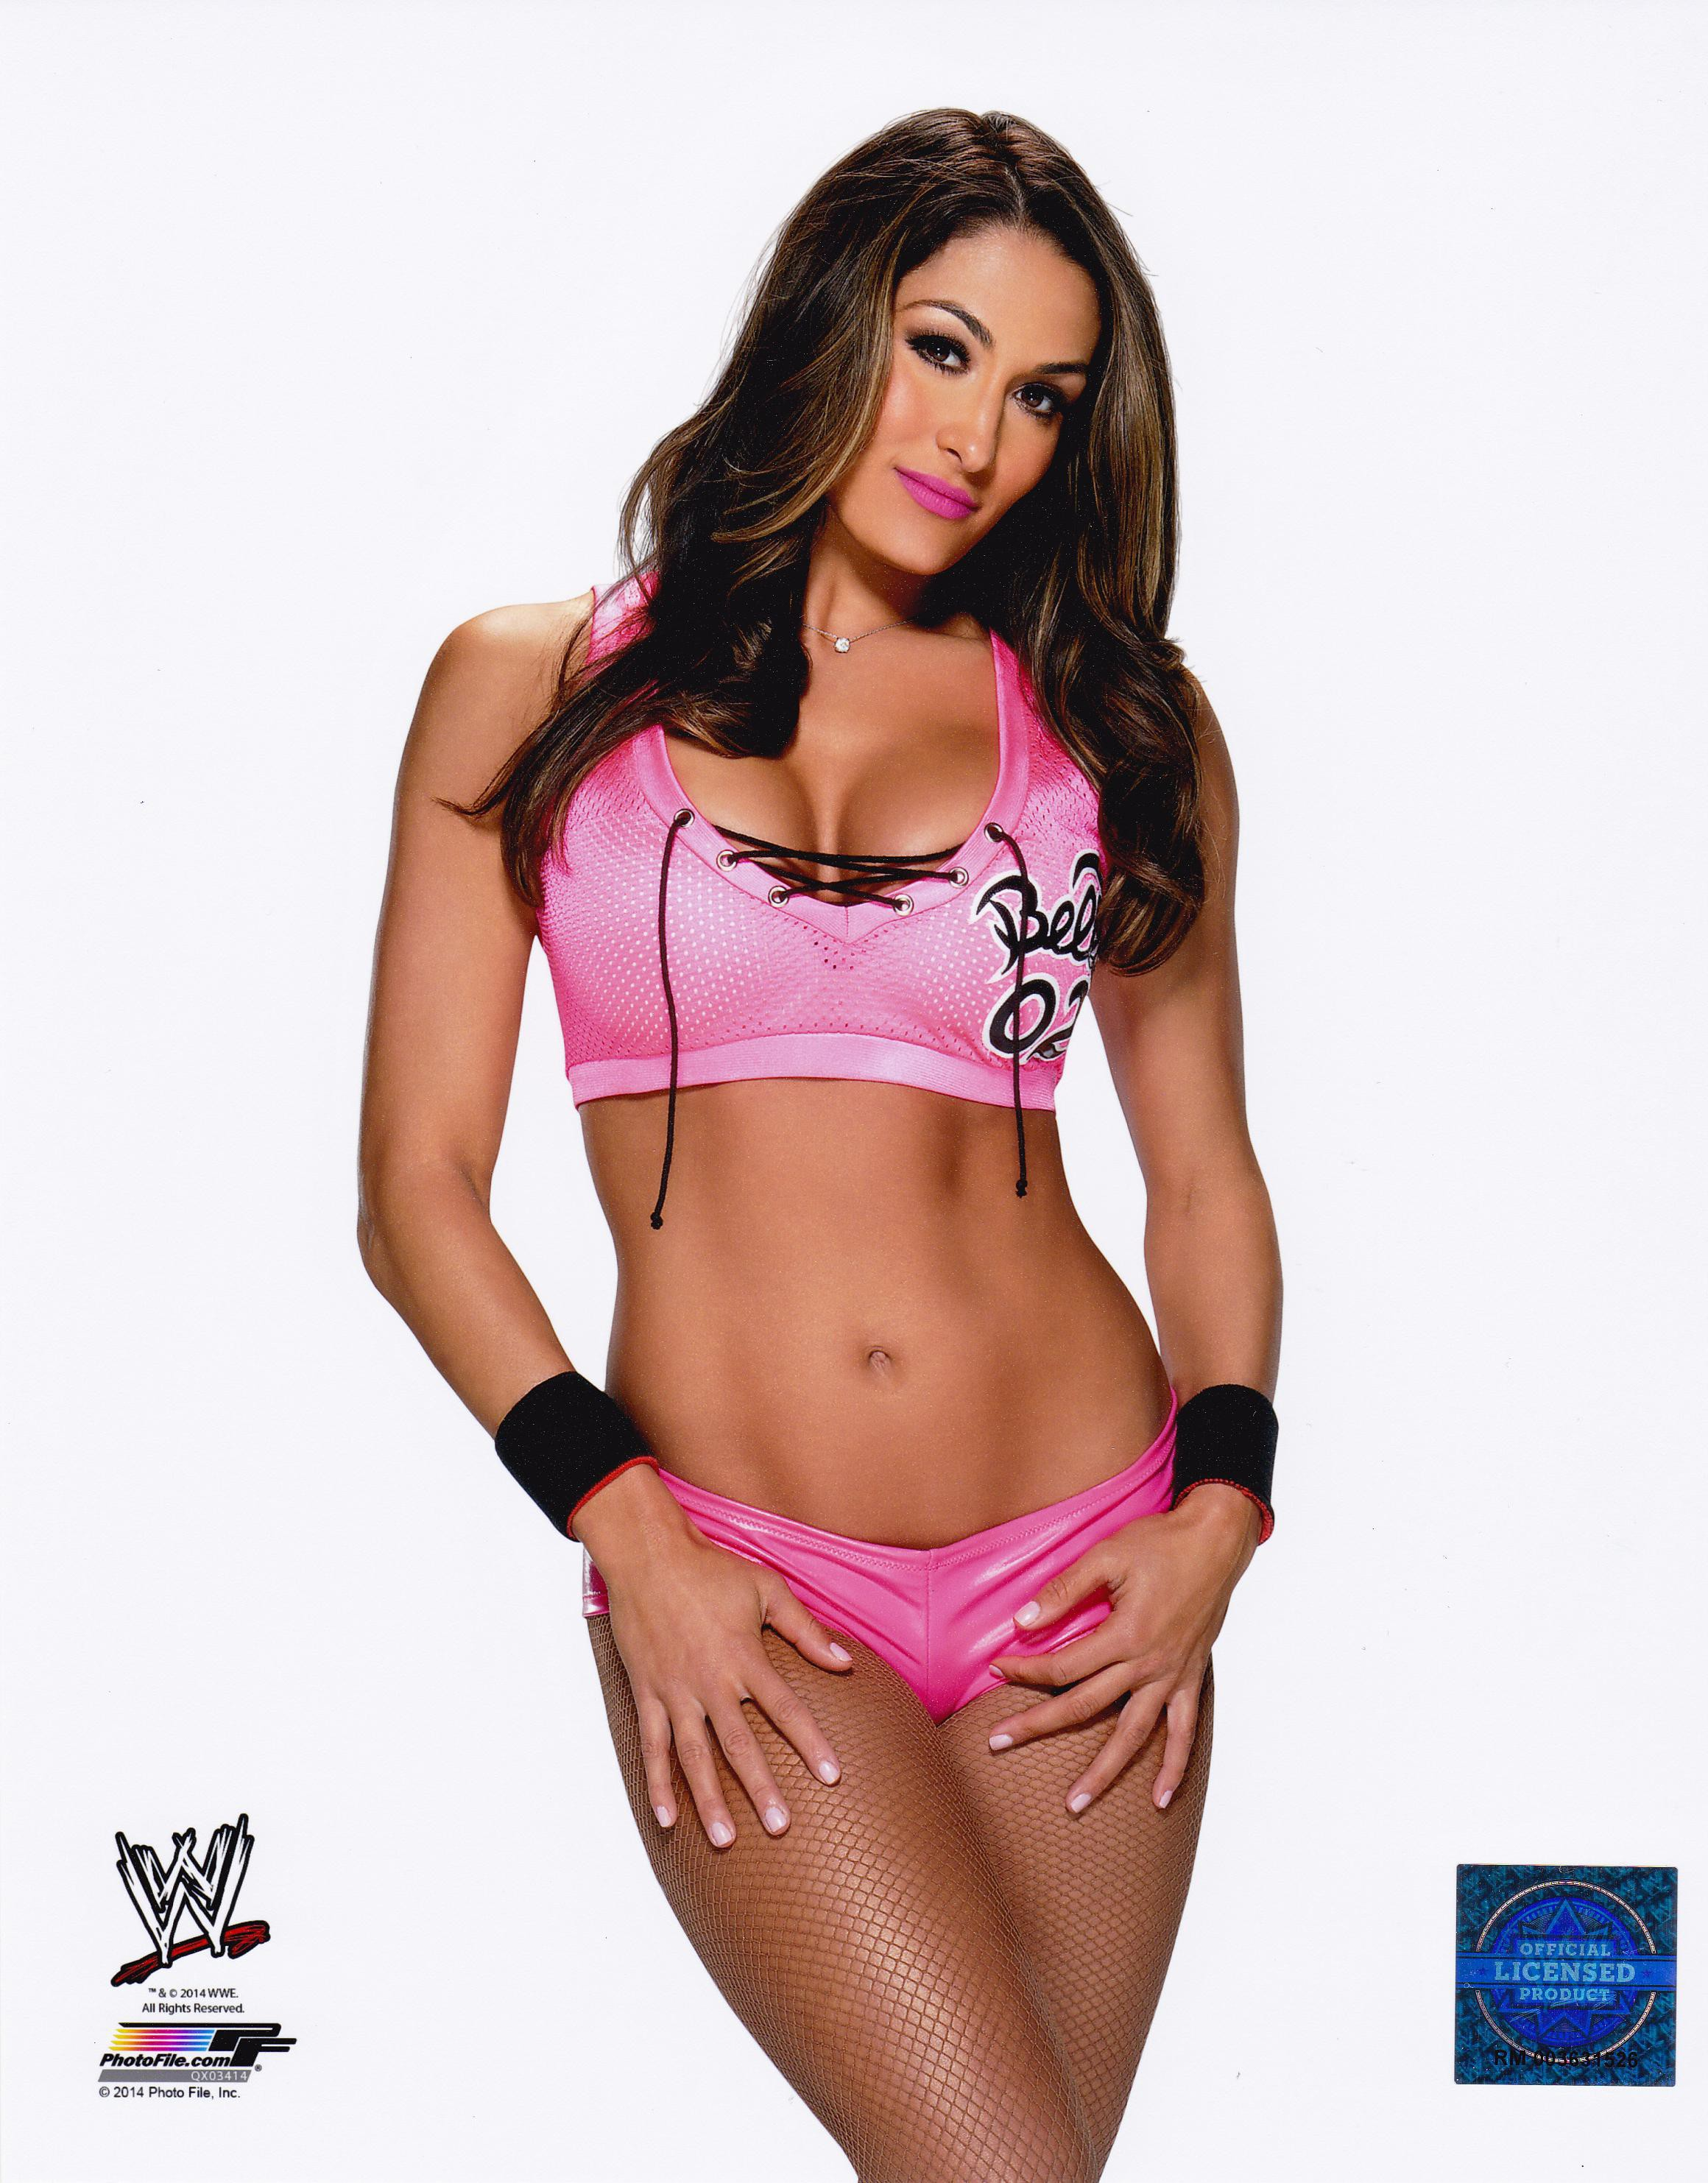 1000+ images about Nikki Bella on Pinterest | Fitness inspiration, Mondays and Brie bella